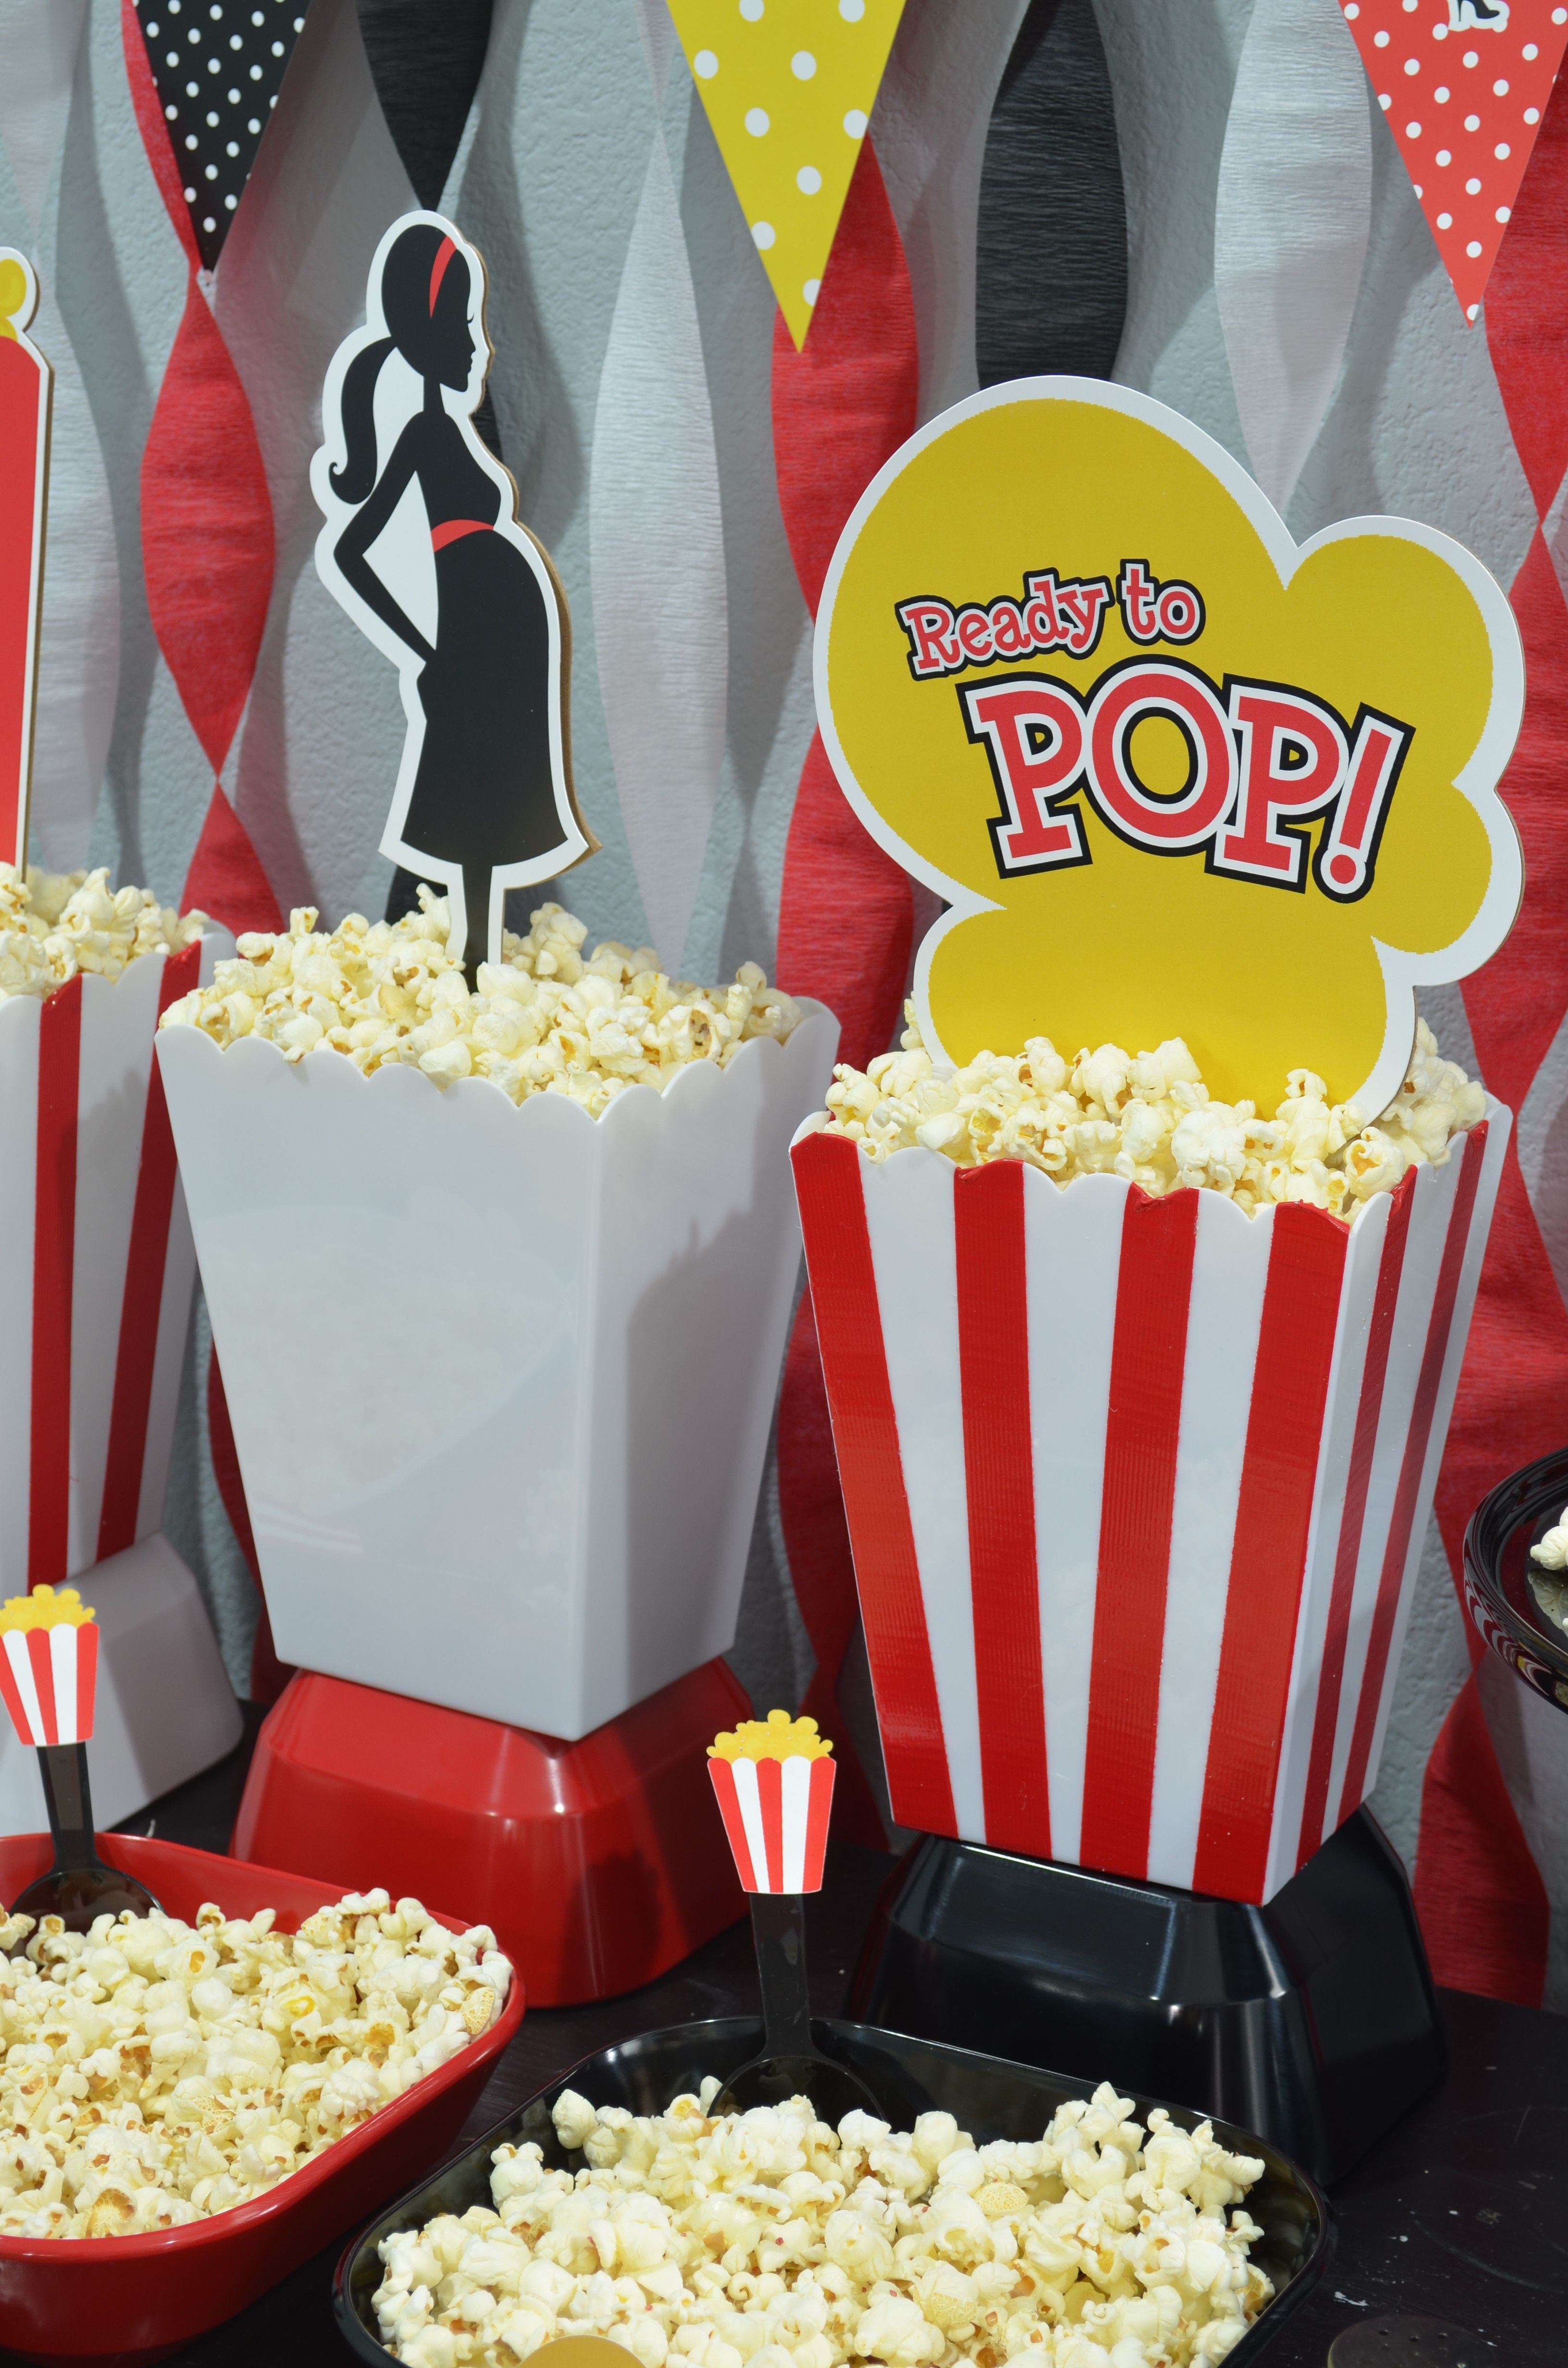 Ready To Pop Baby Shower | Baby | Pinterest | Popcorn containers ...